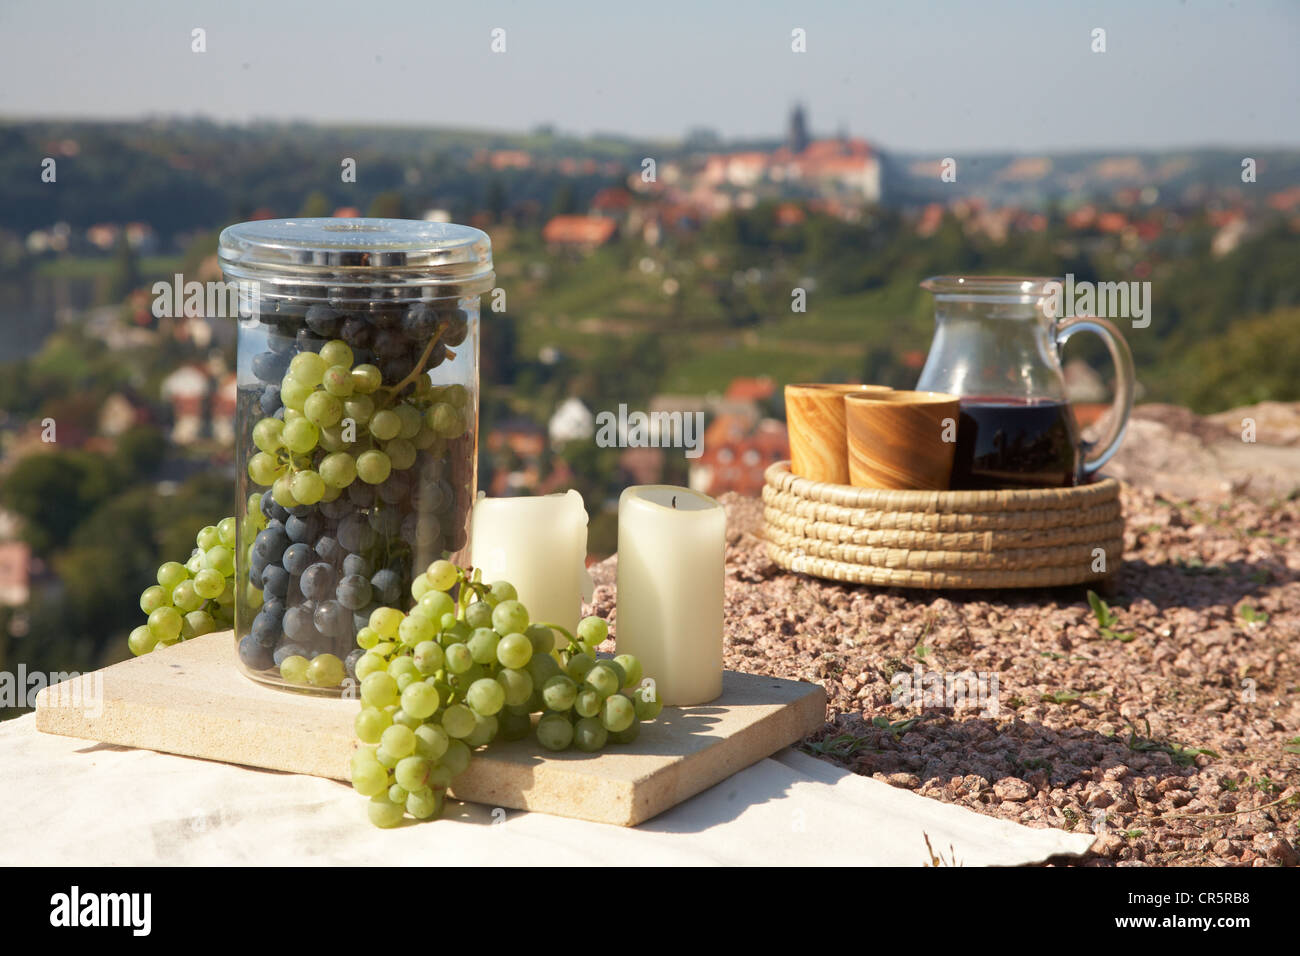 Still life with wine, grapes, a wine decanter, wine cups and candles, against the backdrop of Meissen, Saxony, Germany, - Stock Image